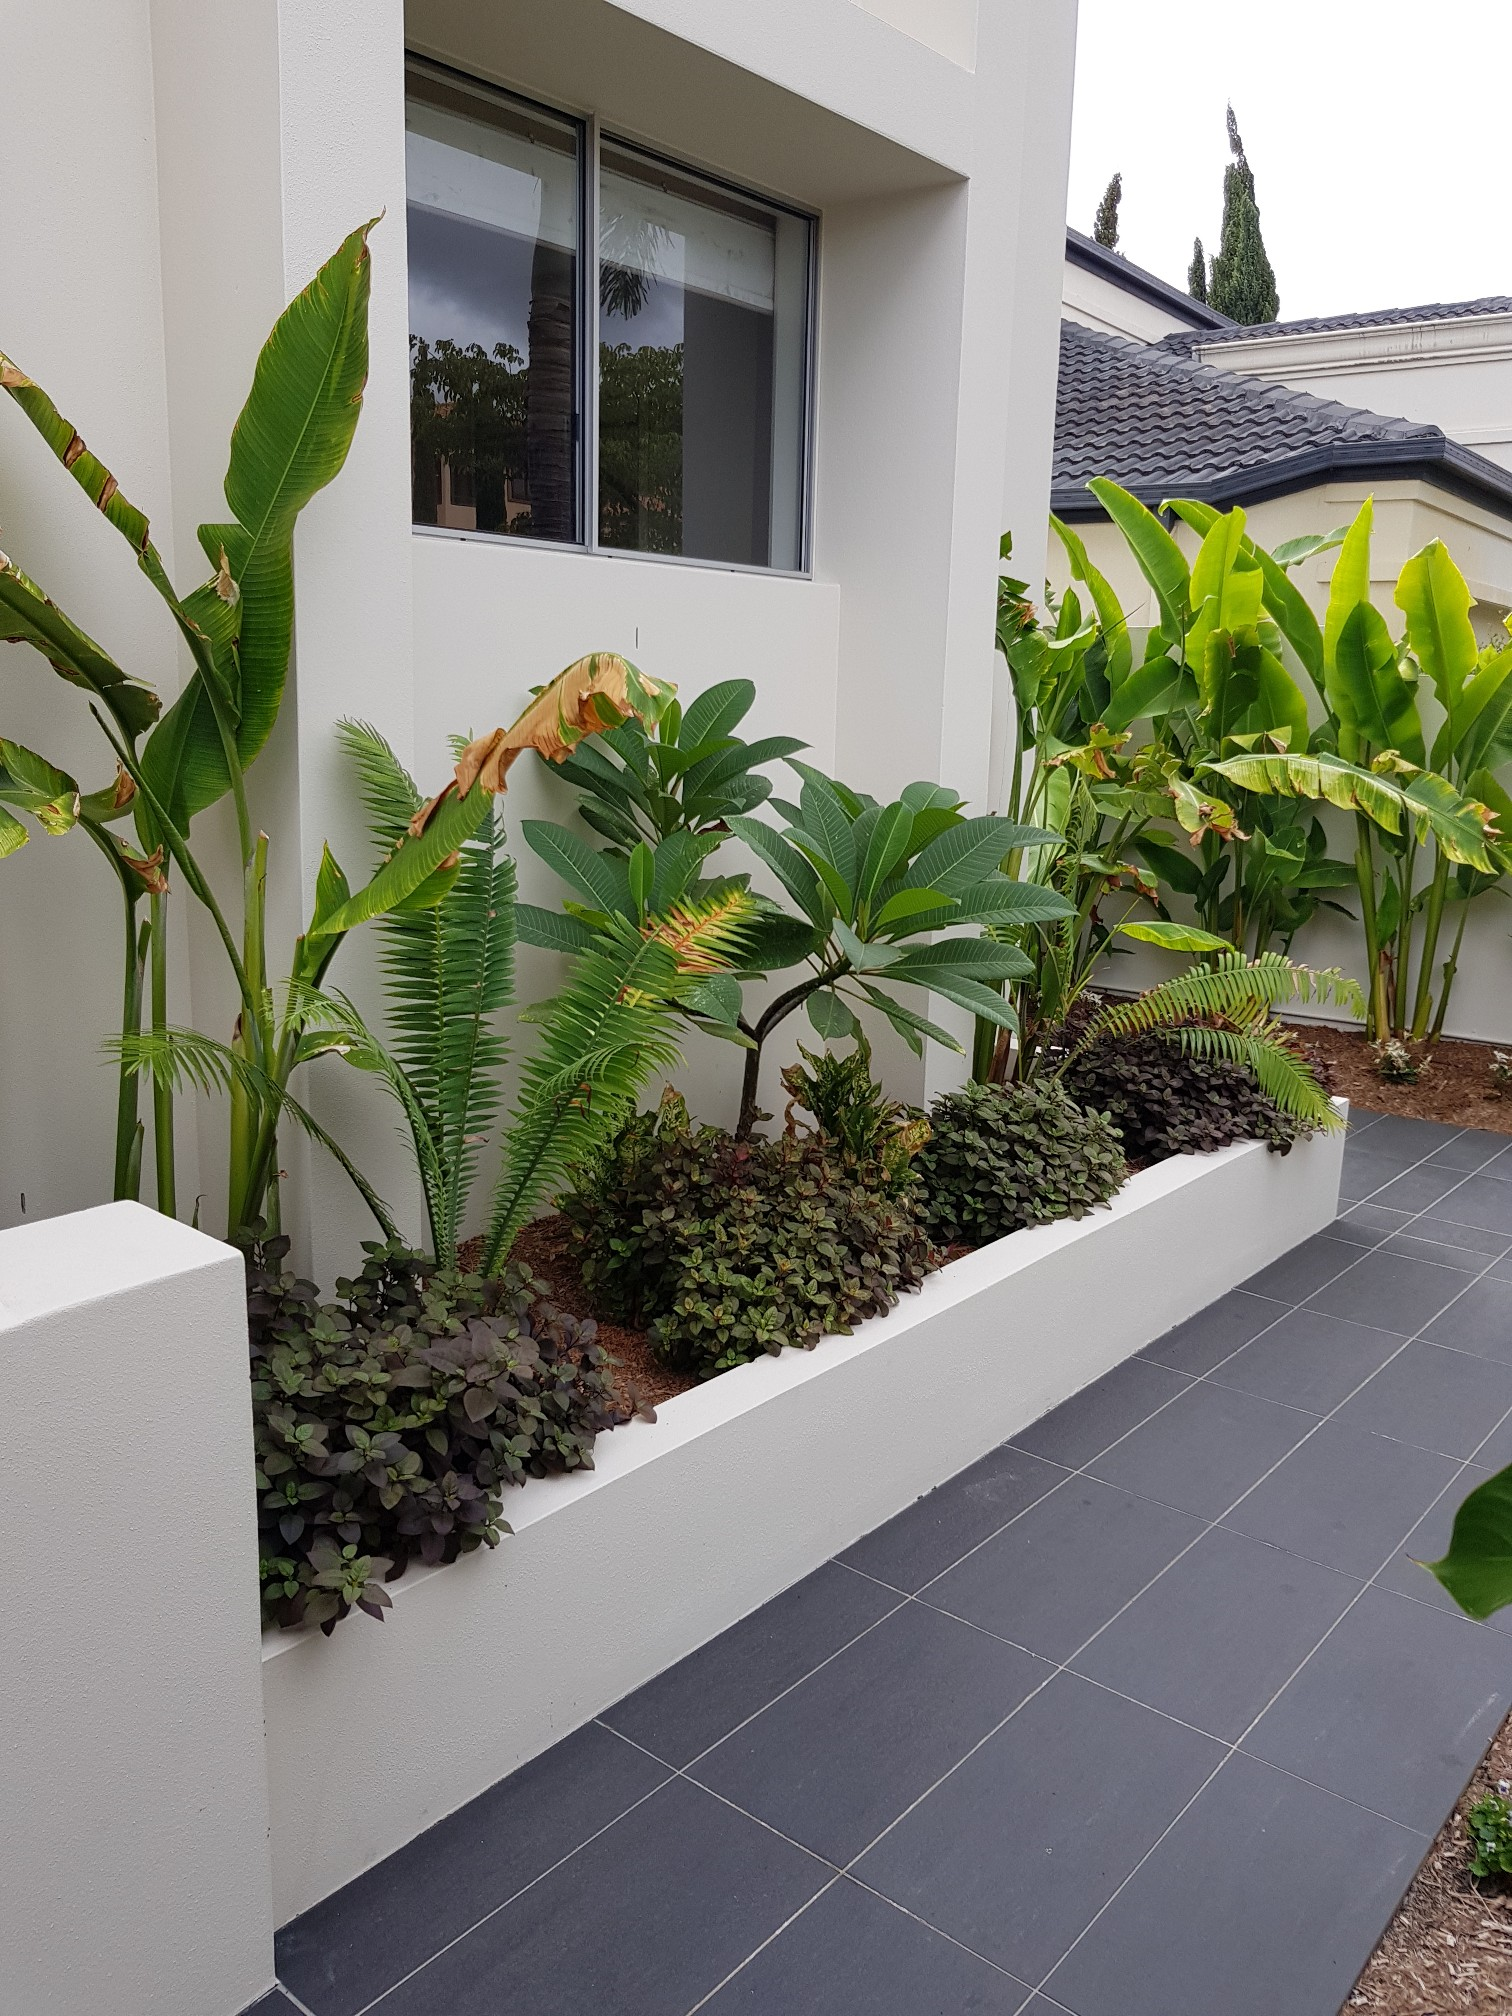 A well maintained Garden Bed